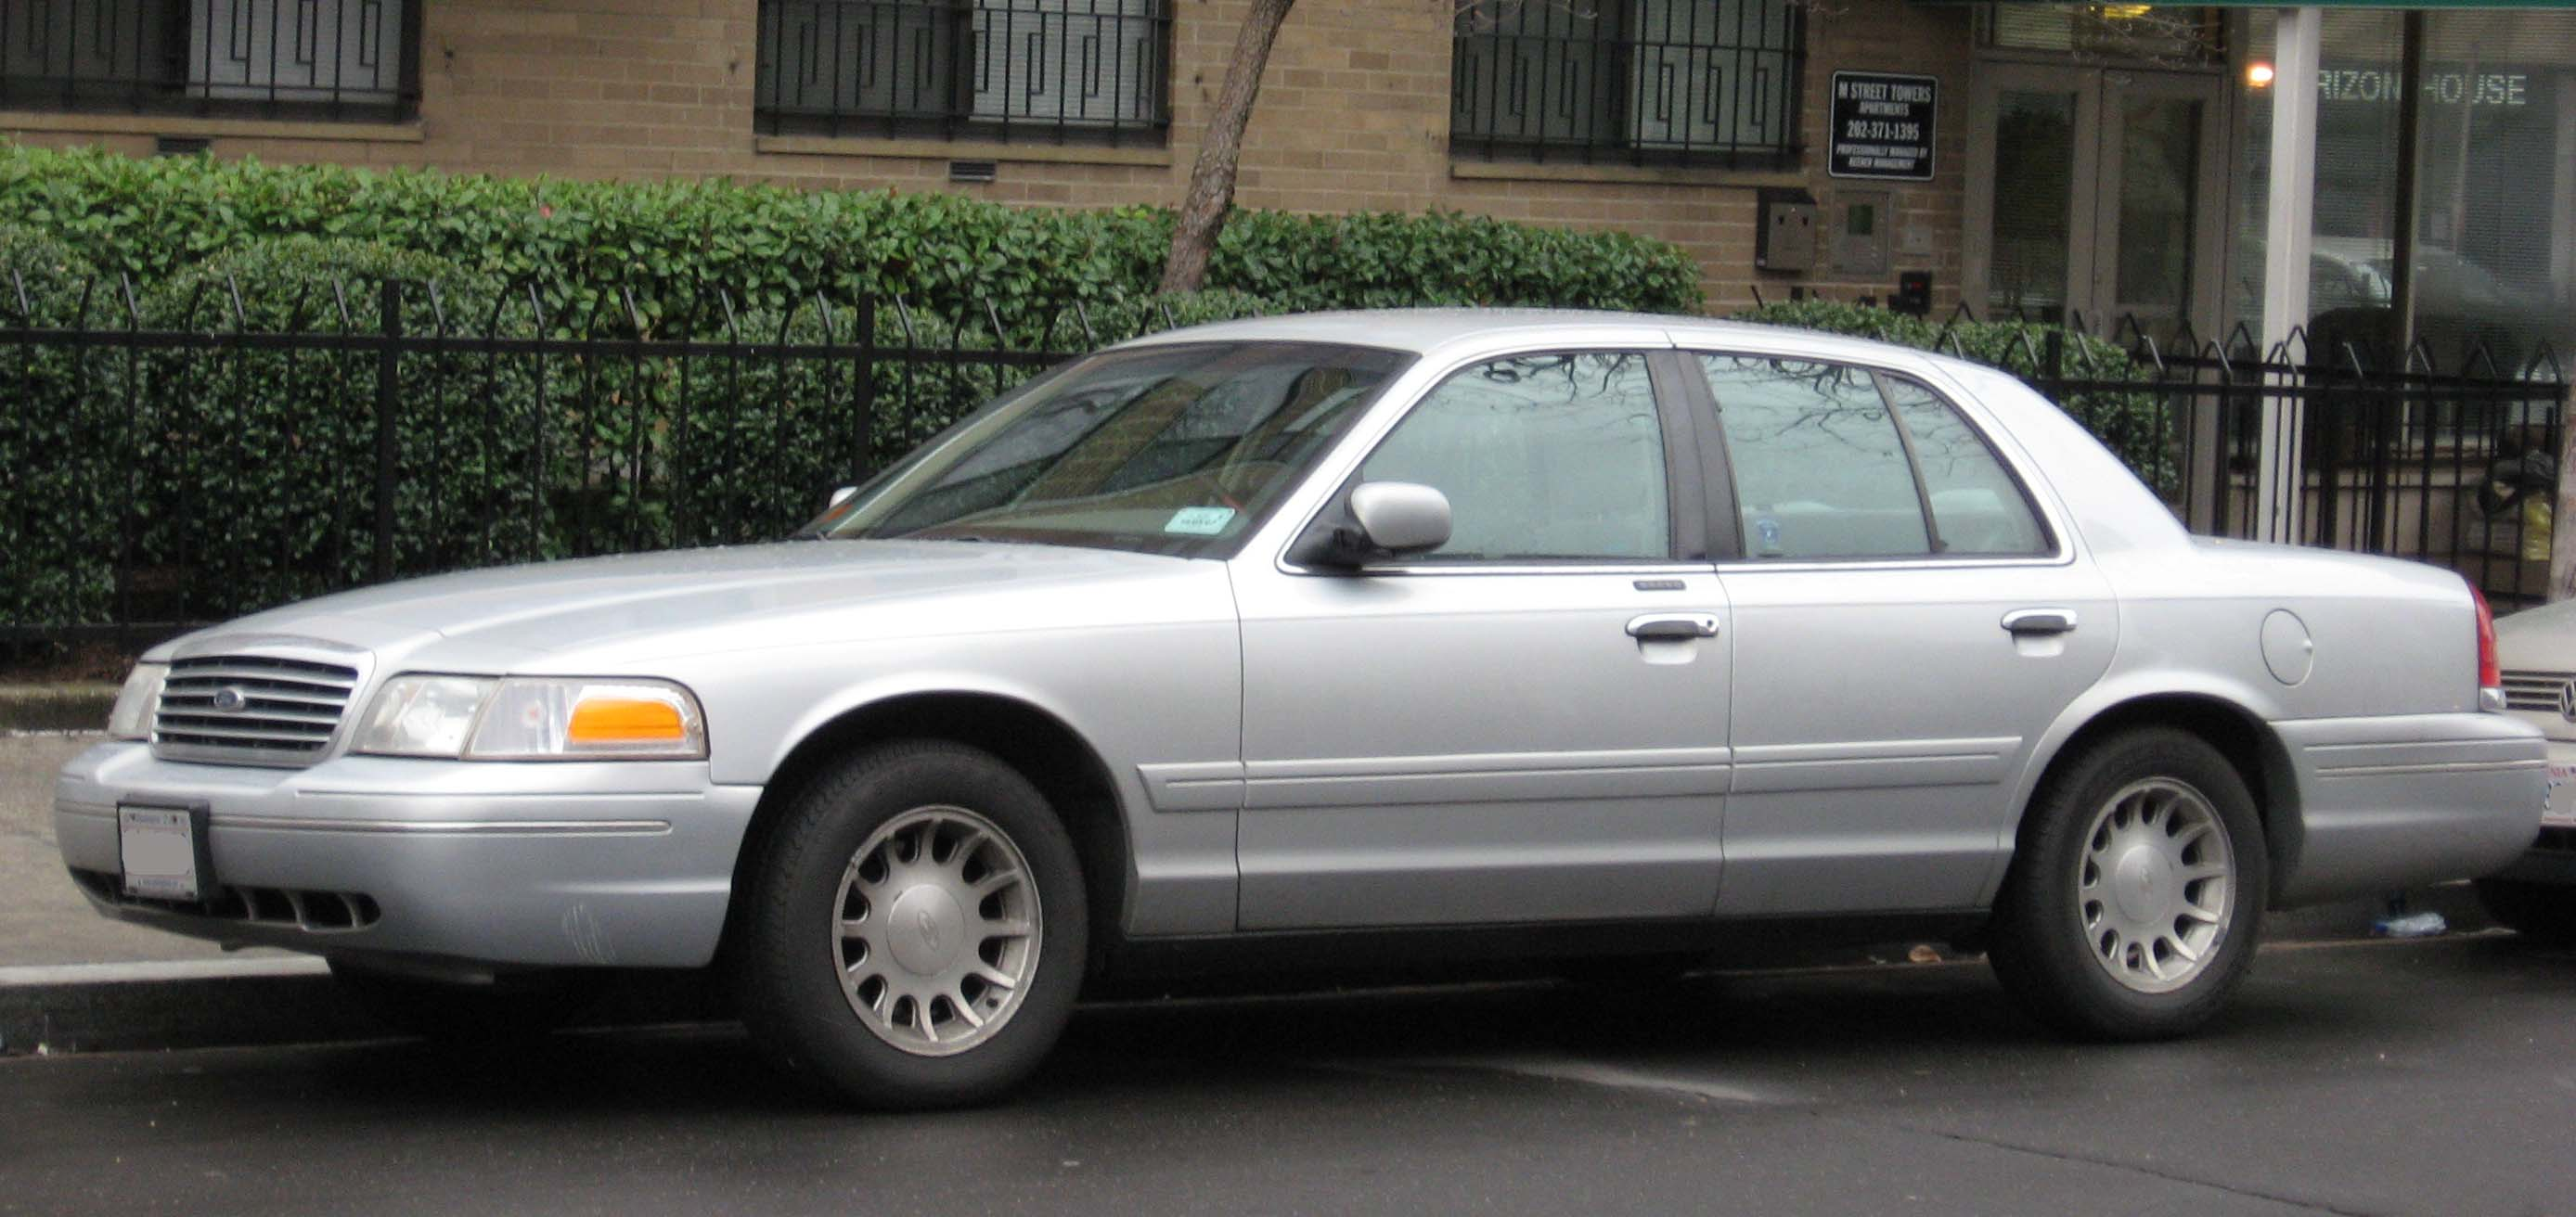 Ford Crown Victoria 2007 #6